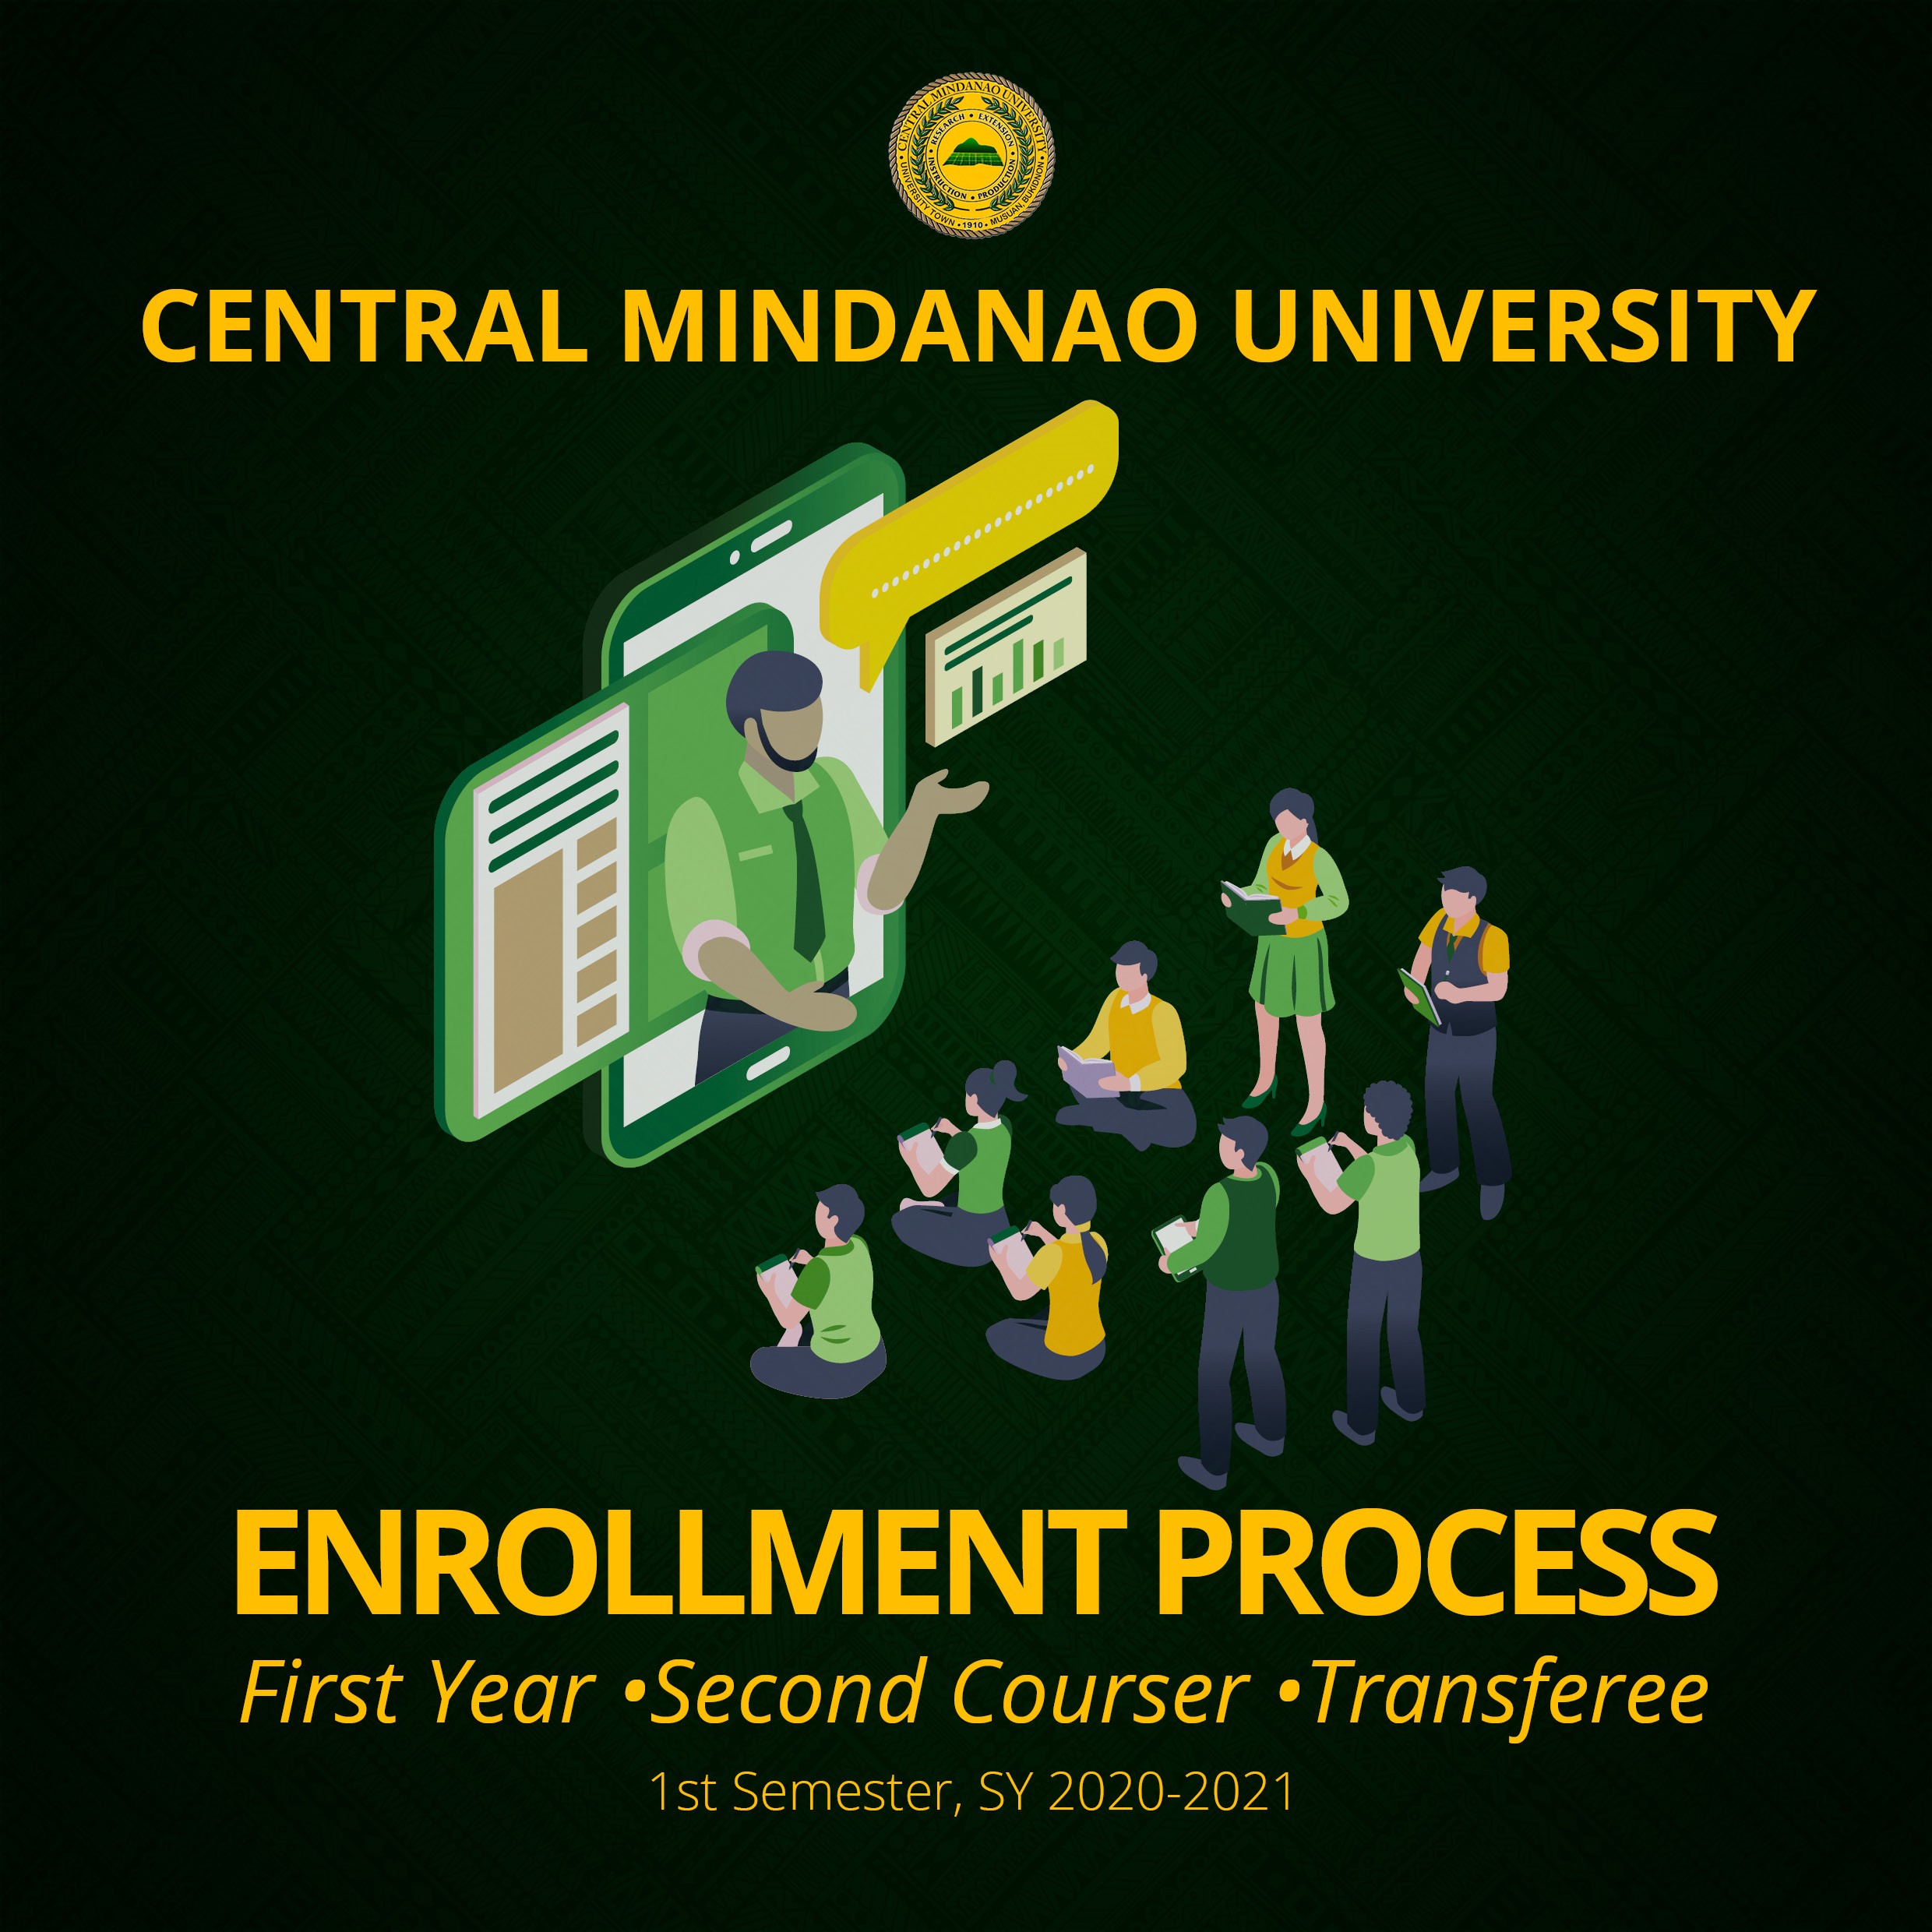 ENROLLMENT PROCESS for First Year, Second Courser, & Transferee, 1st Semester, SY 2020-2021